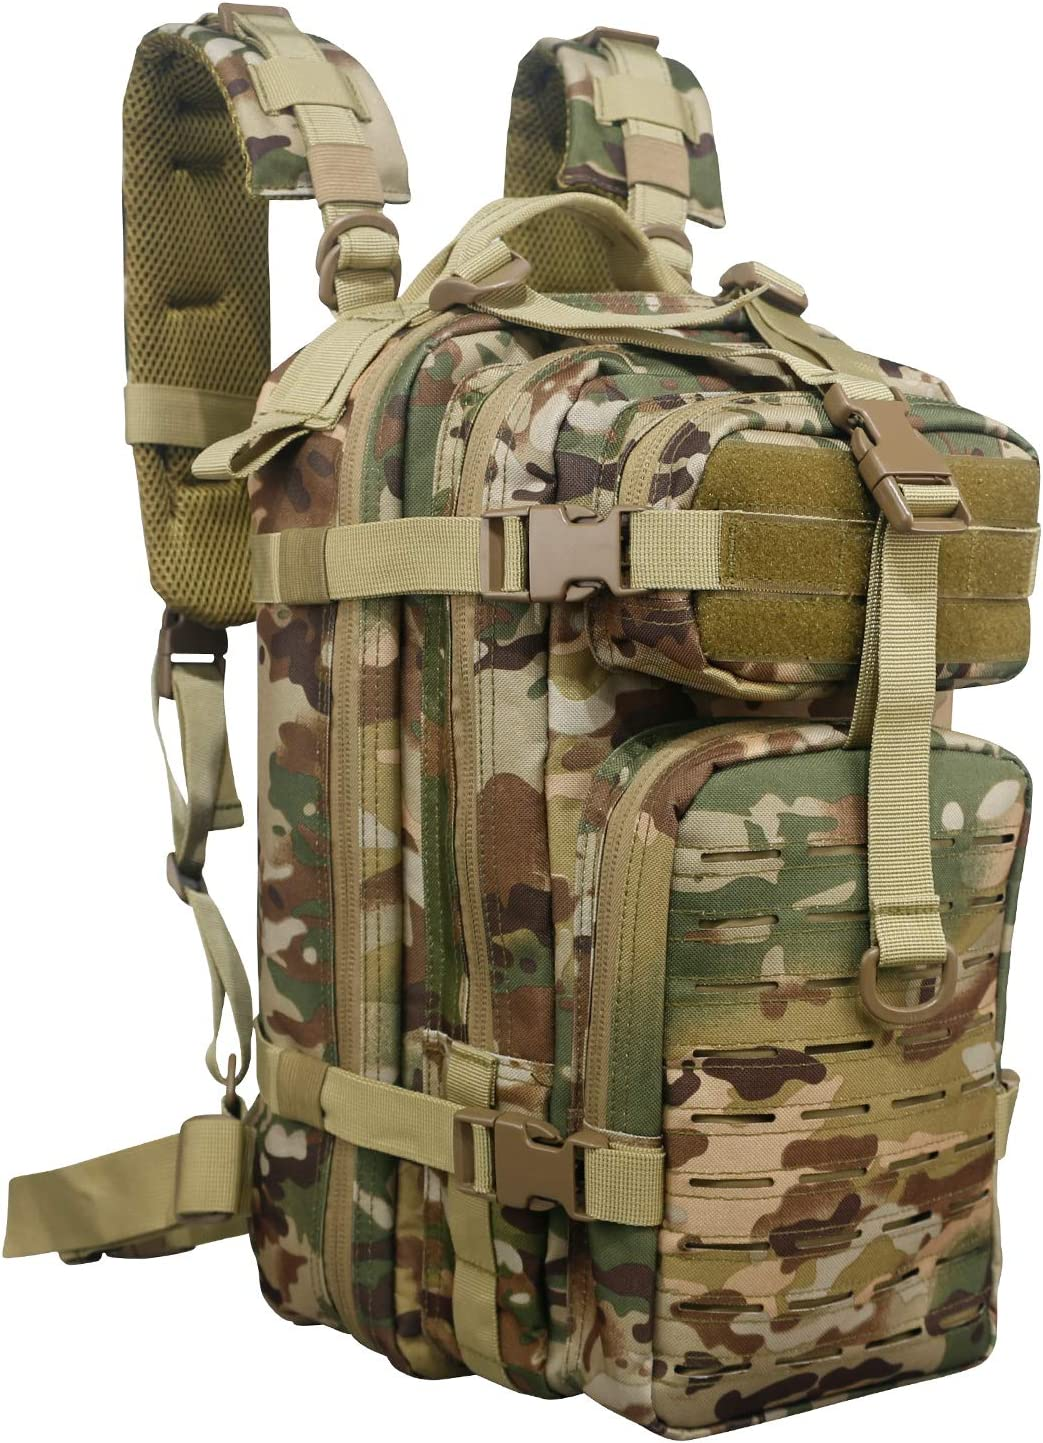 Fox Tactical Small Assault Backpack Military Backpack Tactical Bag for Outdoor, Hiking, Camping Travel Black Tan